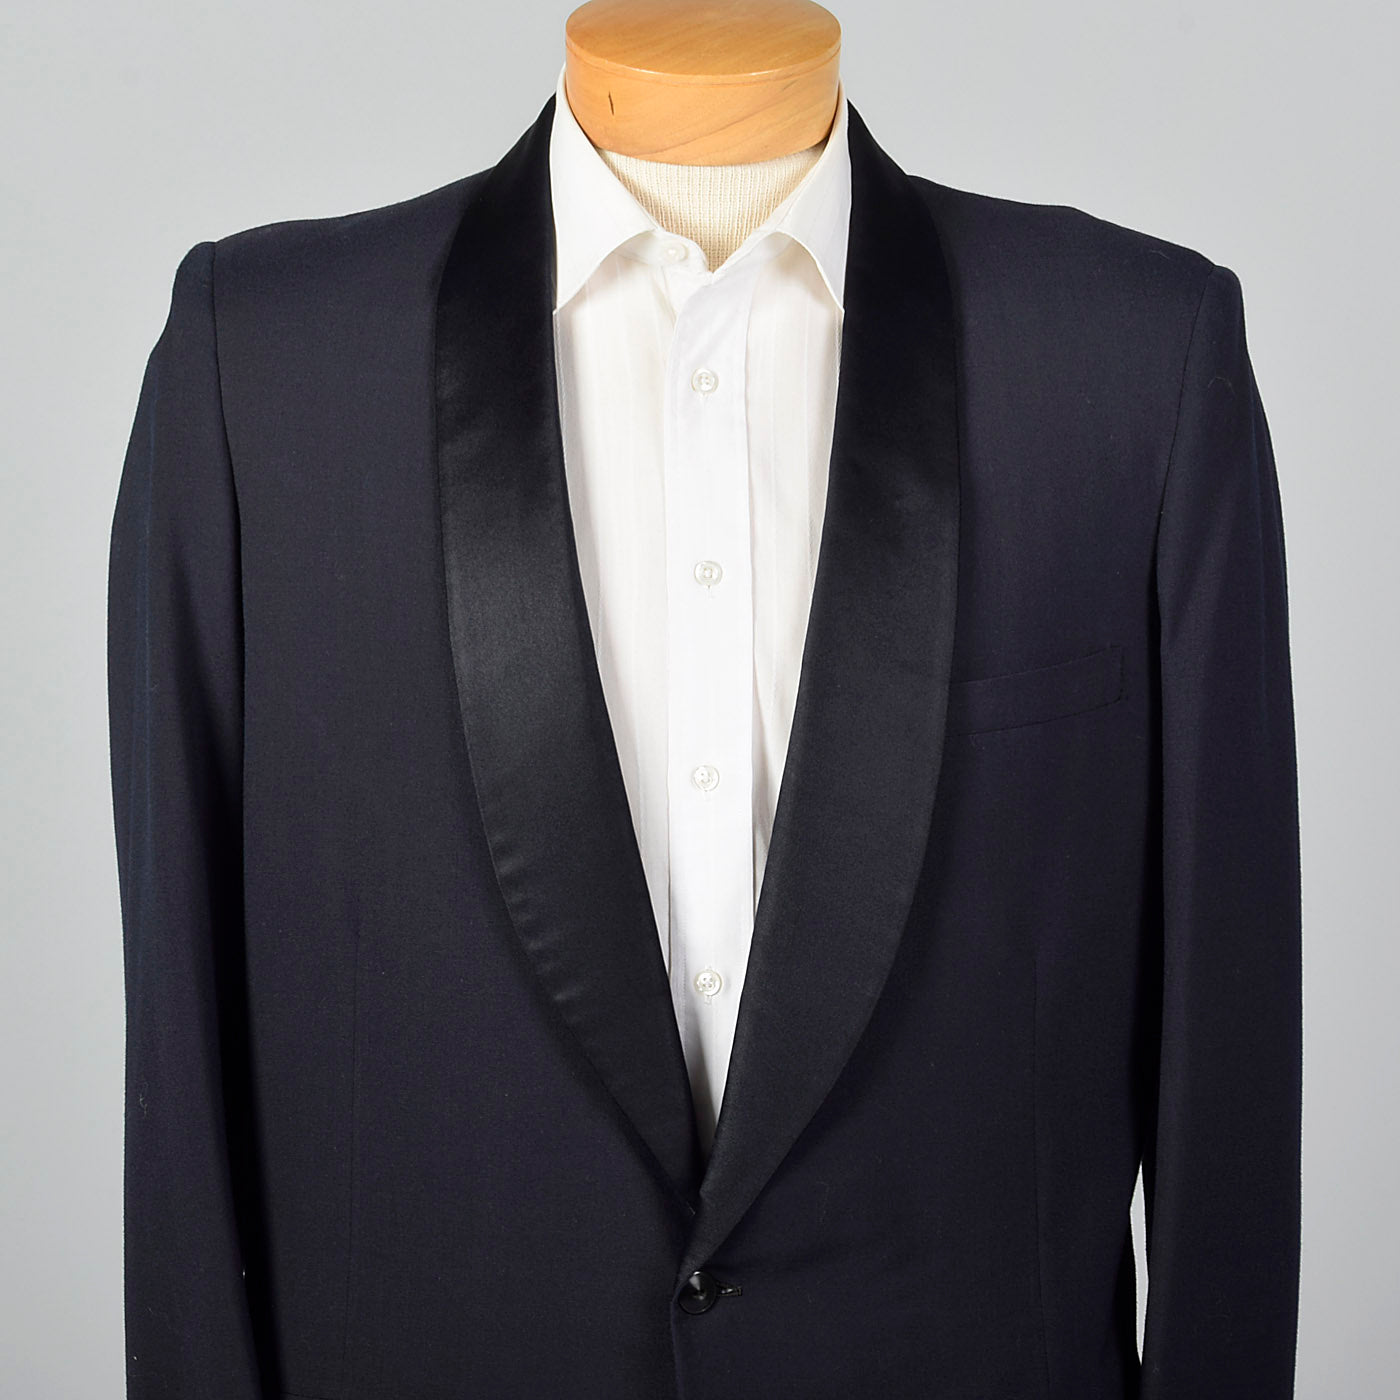 1950s Navy Shawl Collar Jacket